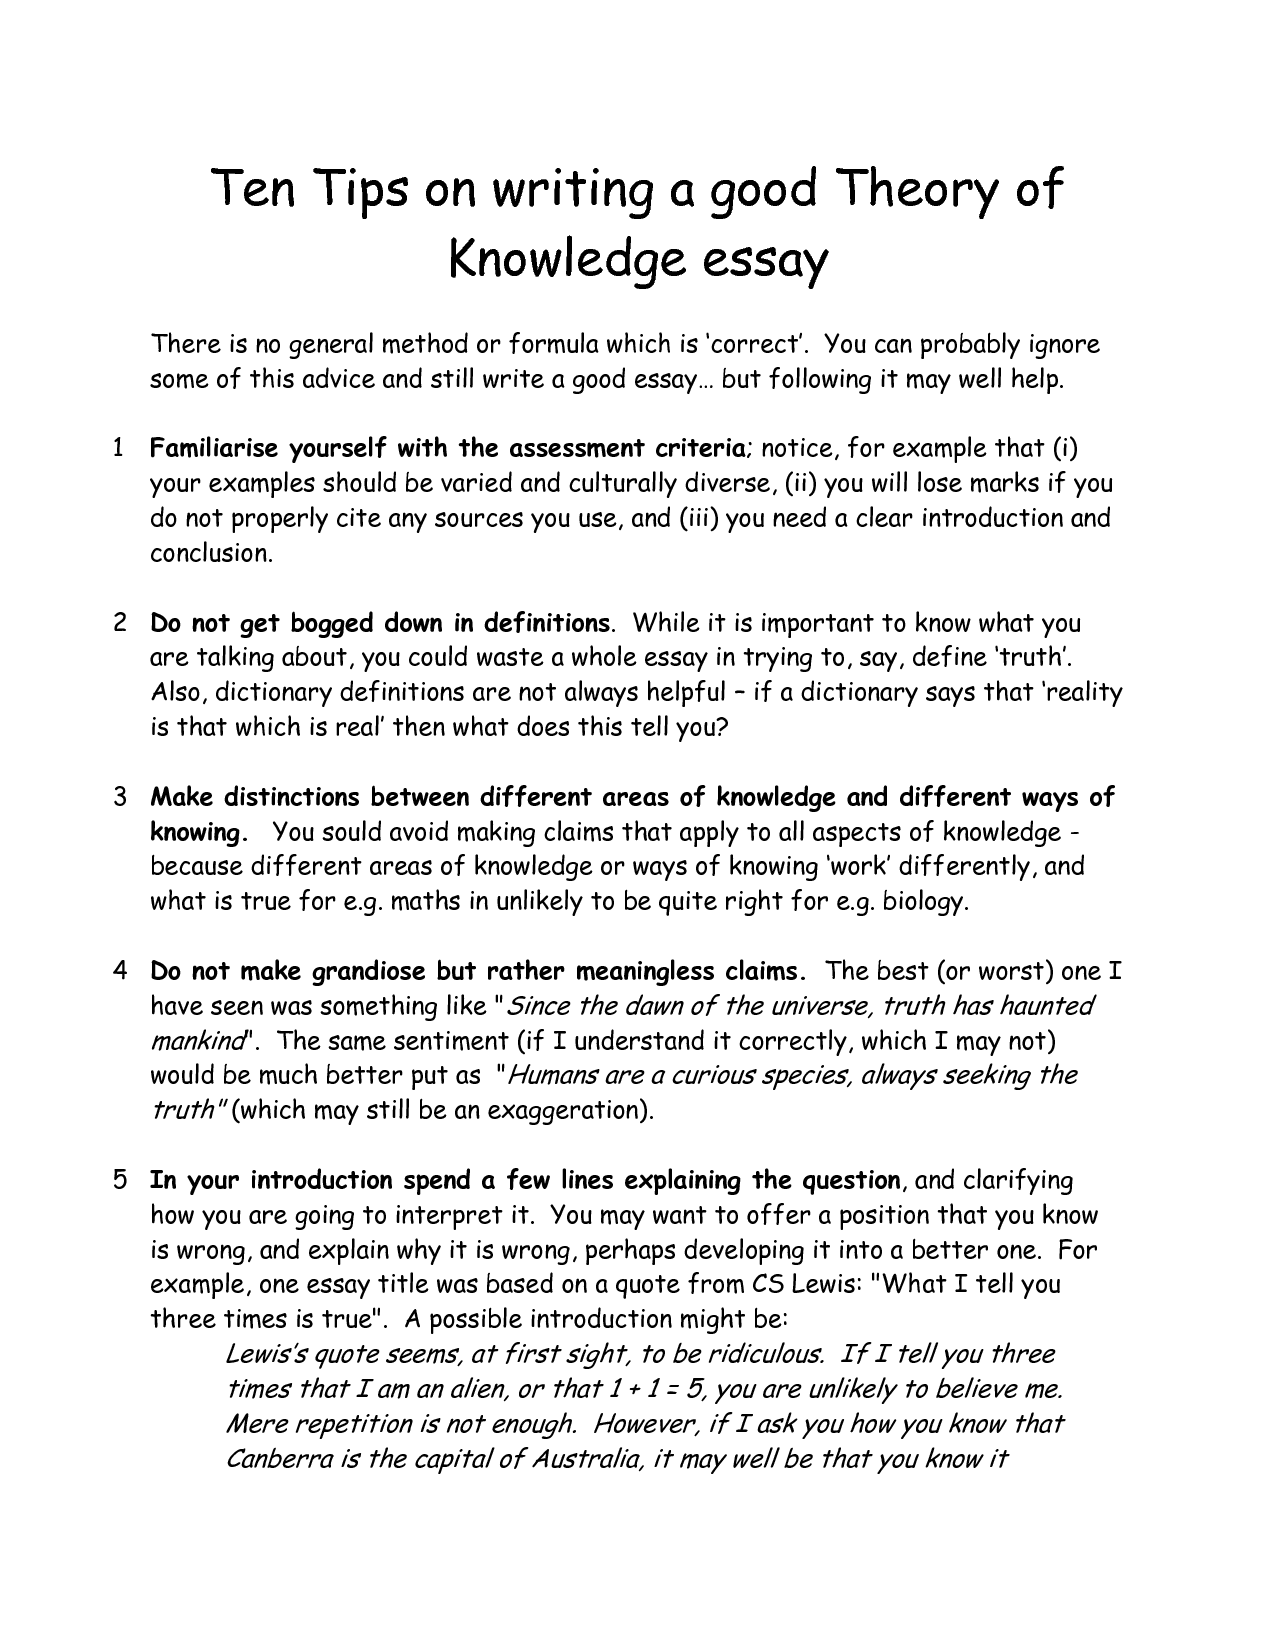 013 Essay Example Write Awful A About Your Best Friend Descriptive On Freedom Fighter Full